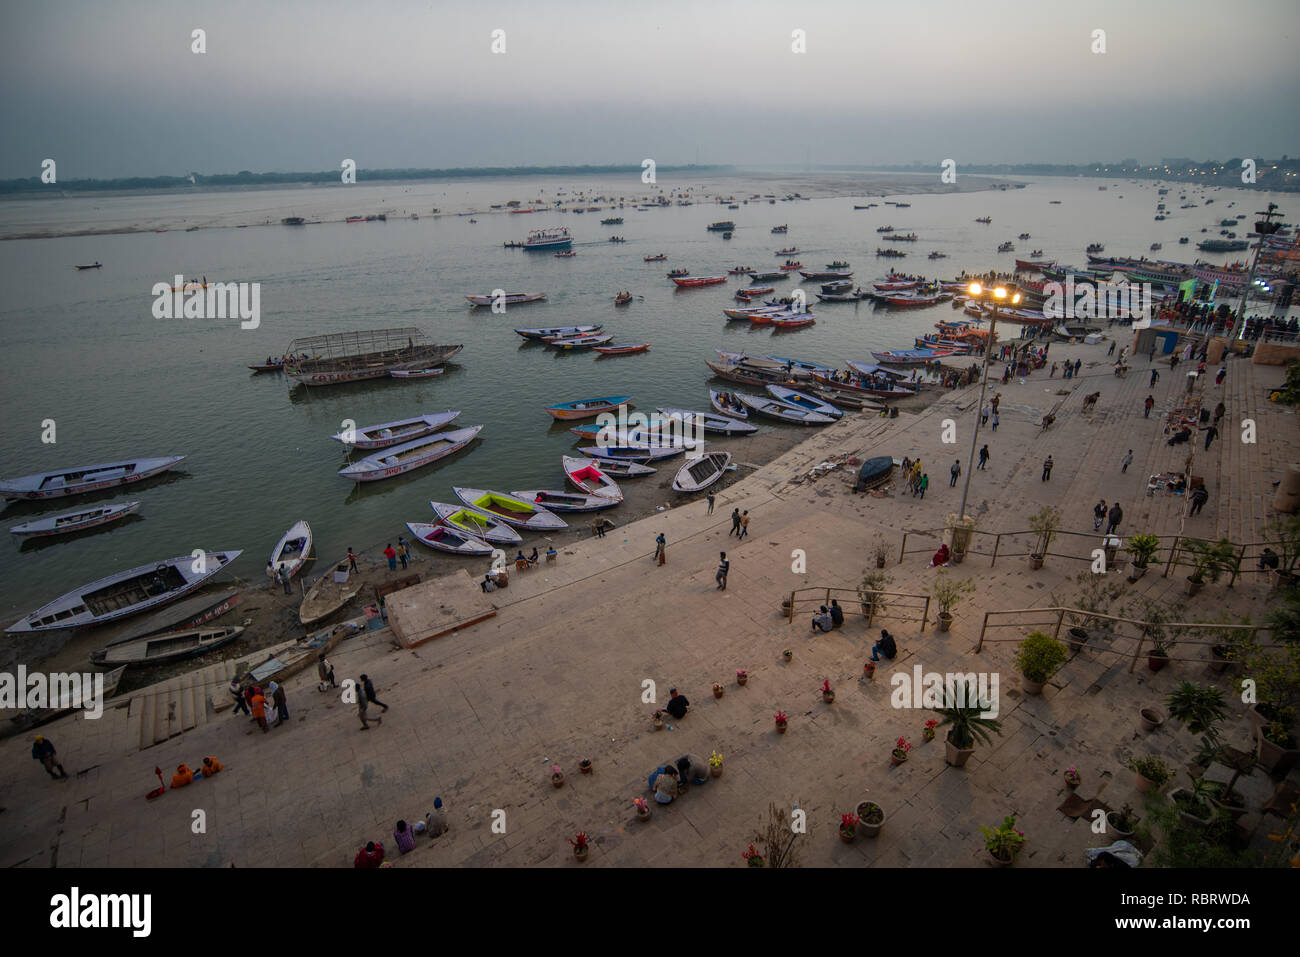 Elevated blue hour (post sunset) scene of the Ganges with boats in the river in Varanasi, India - Stock Image